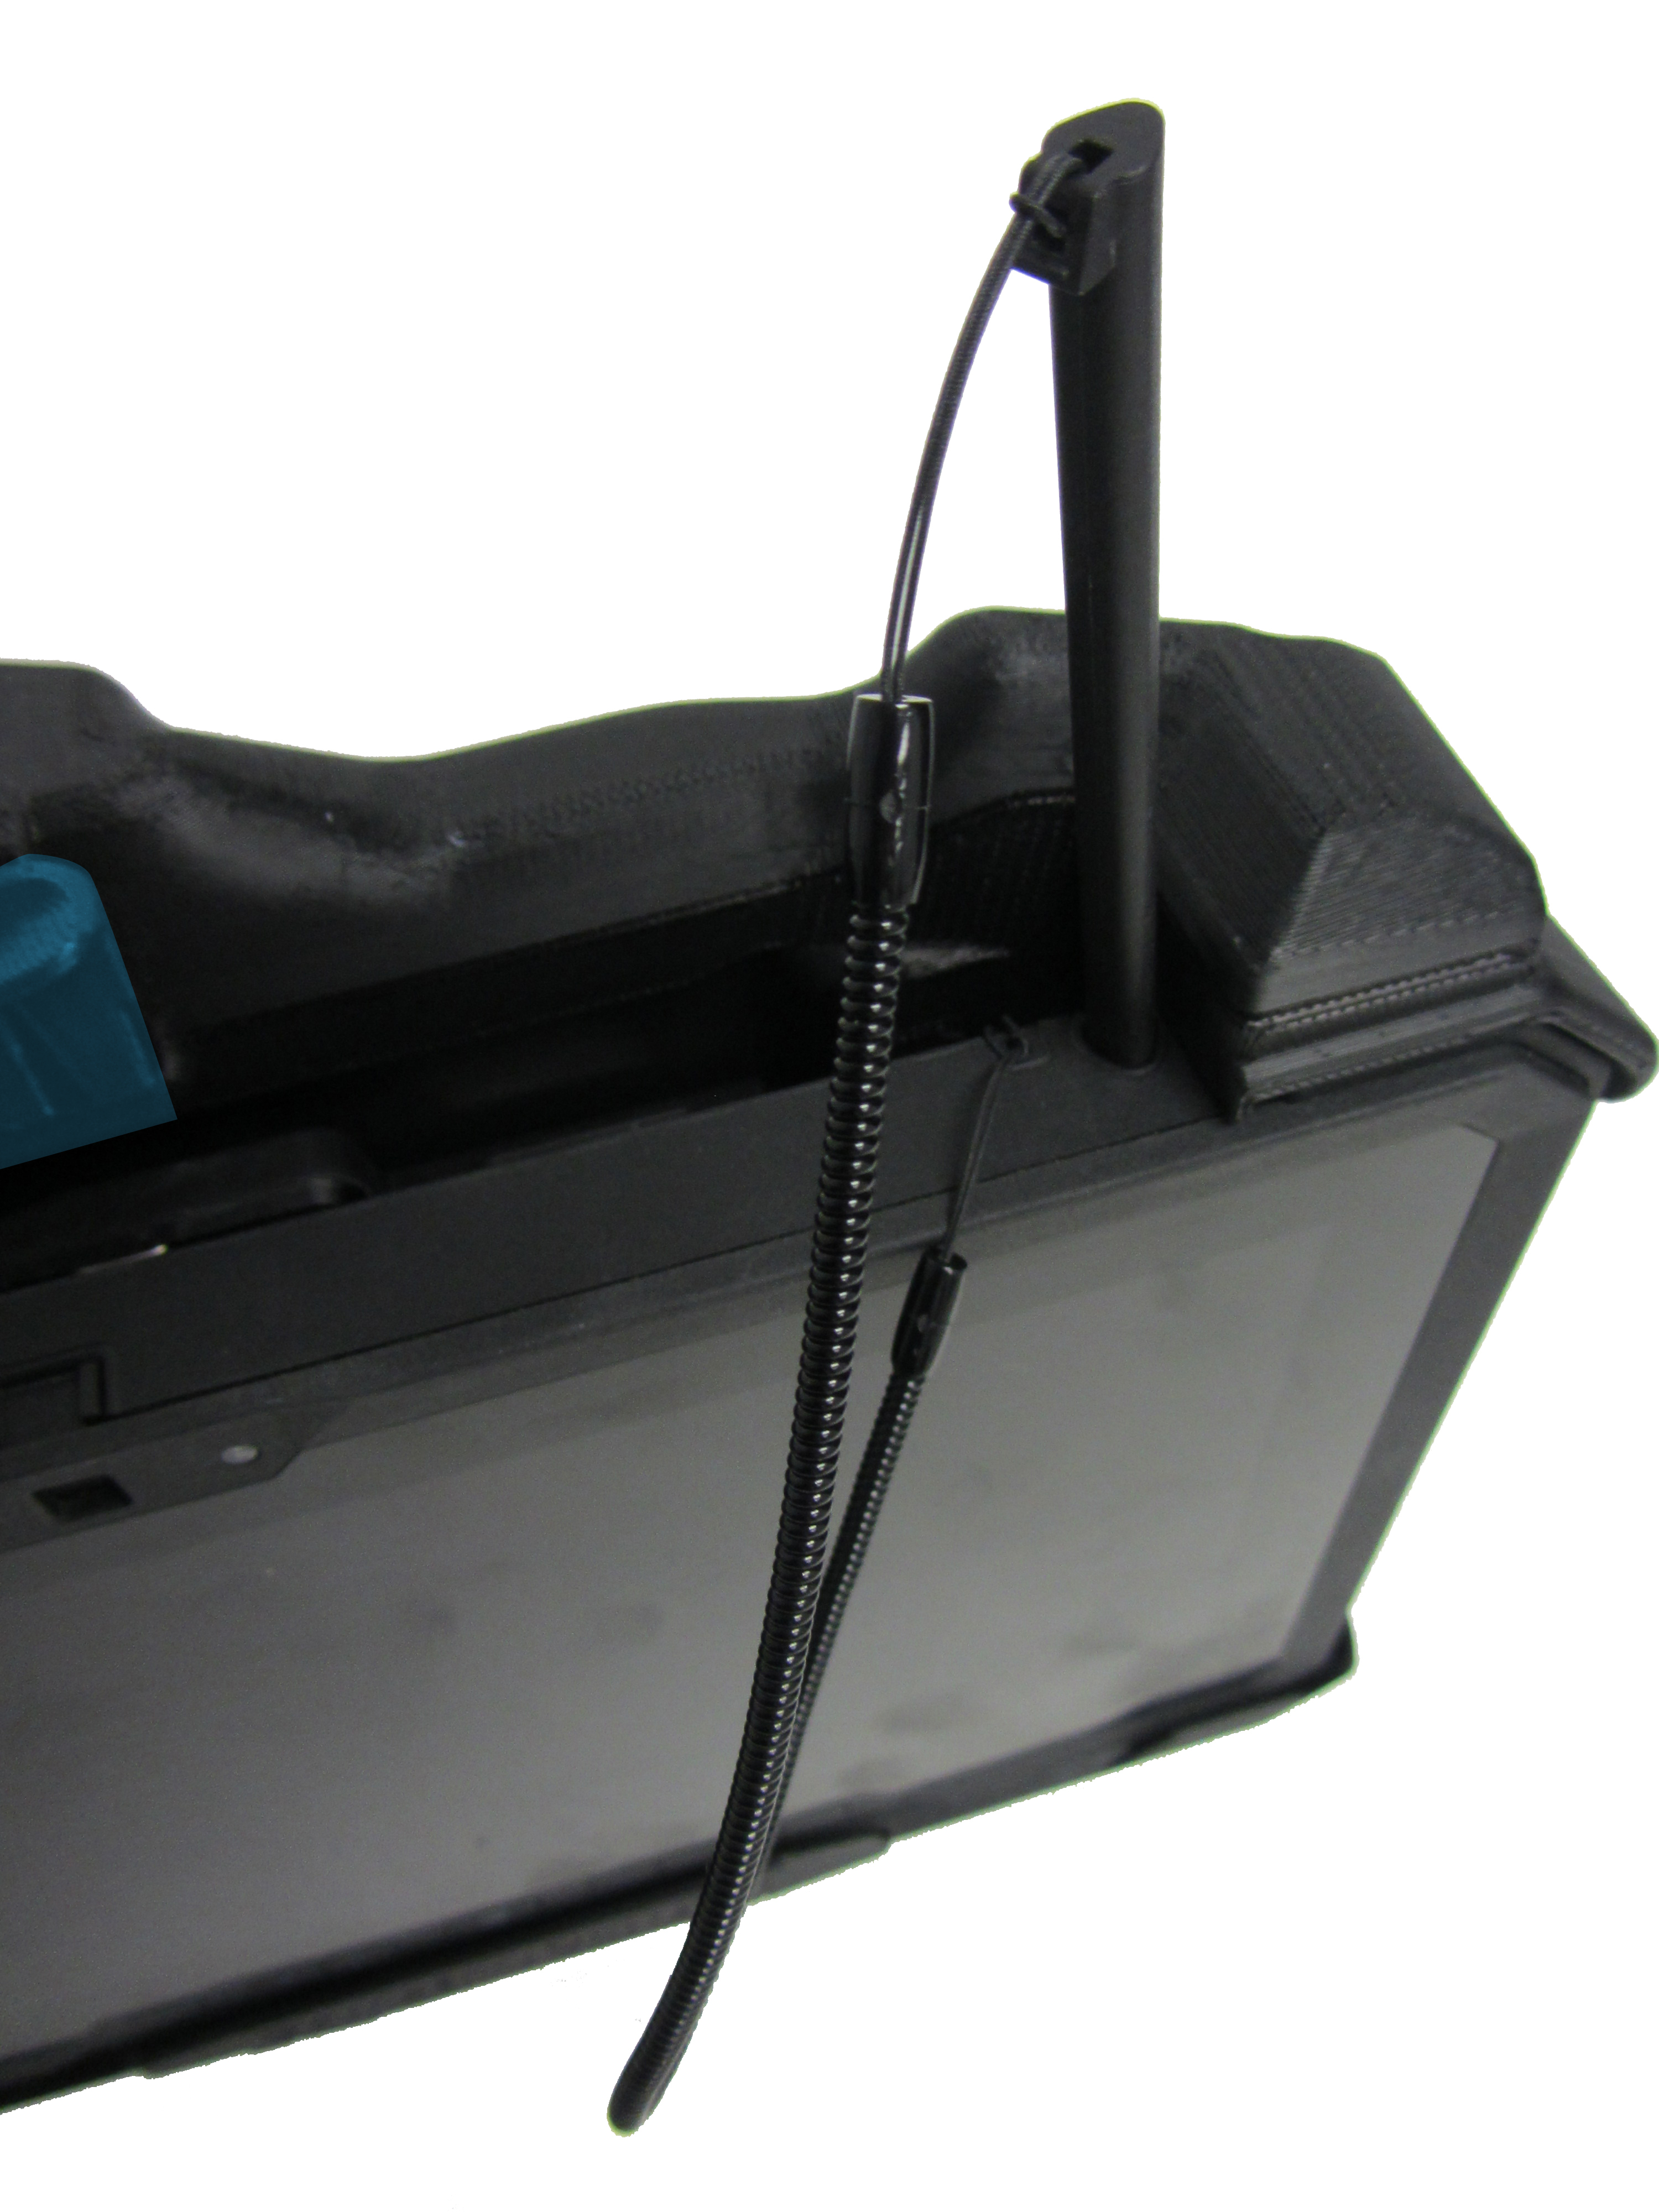 Gamber Johnson Introduces An In Vehicle Docking Station